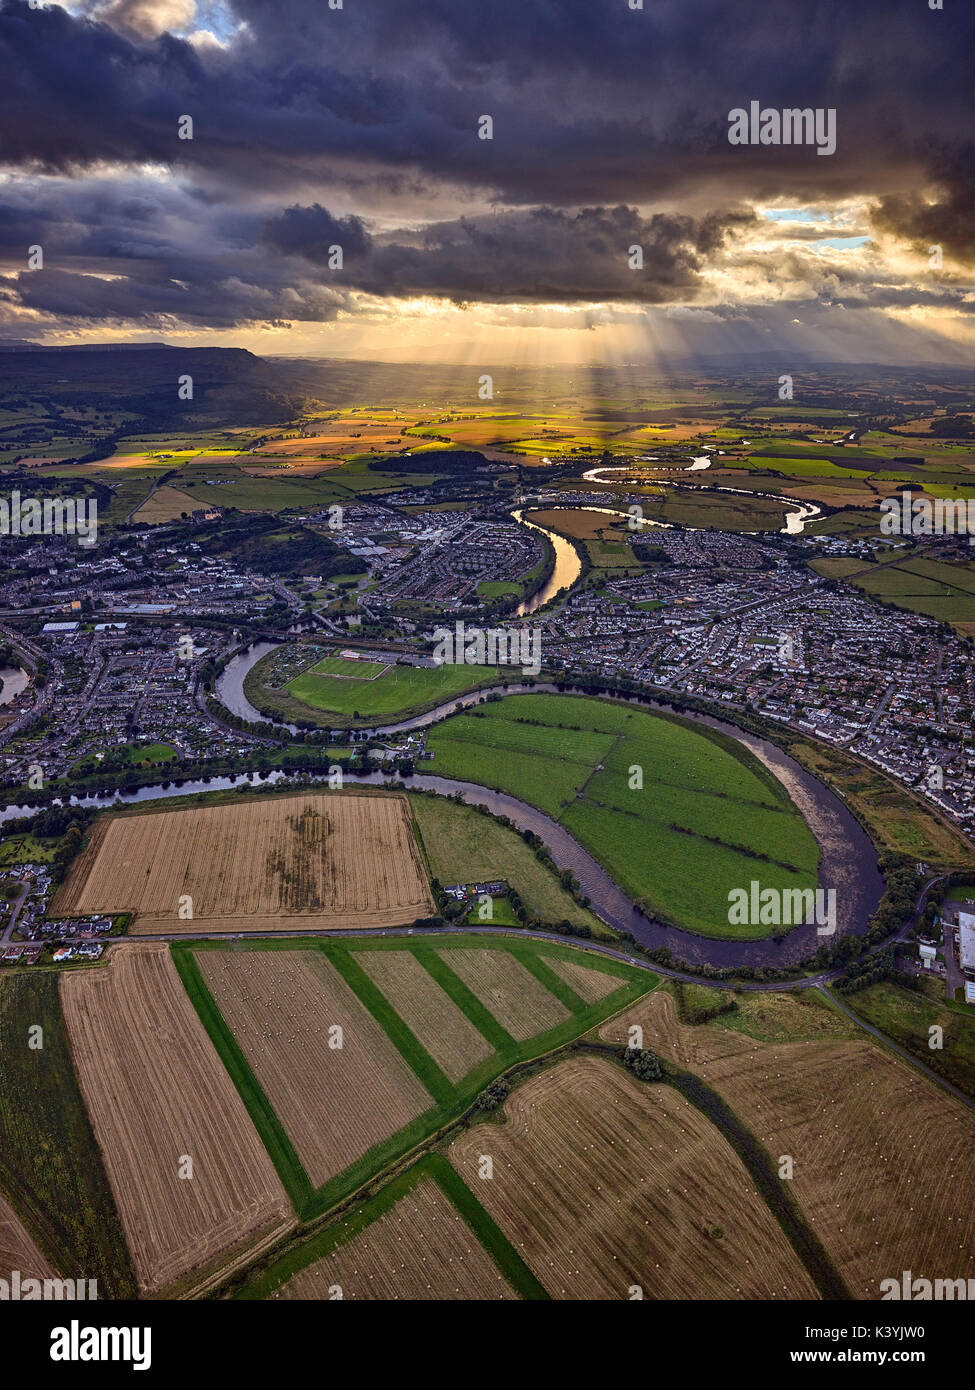 The River Forth snakes into the distance through Stirling as a burst of light  brightens the distant fields, Scotland. Captured from a helicopter - Stock Image